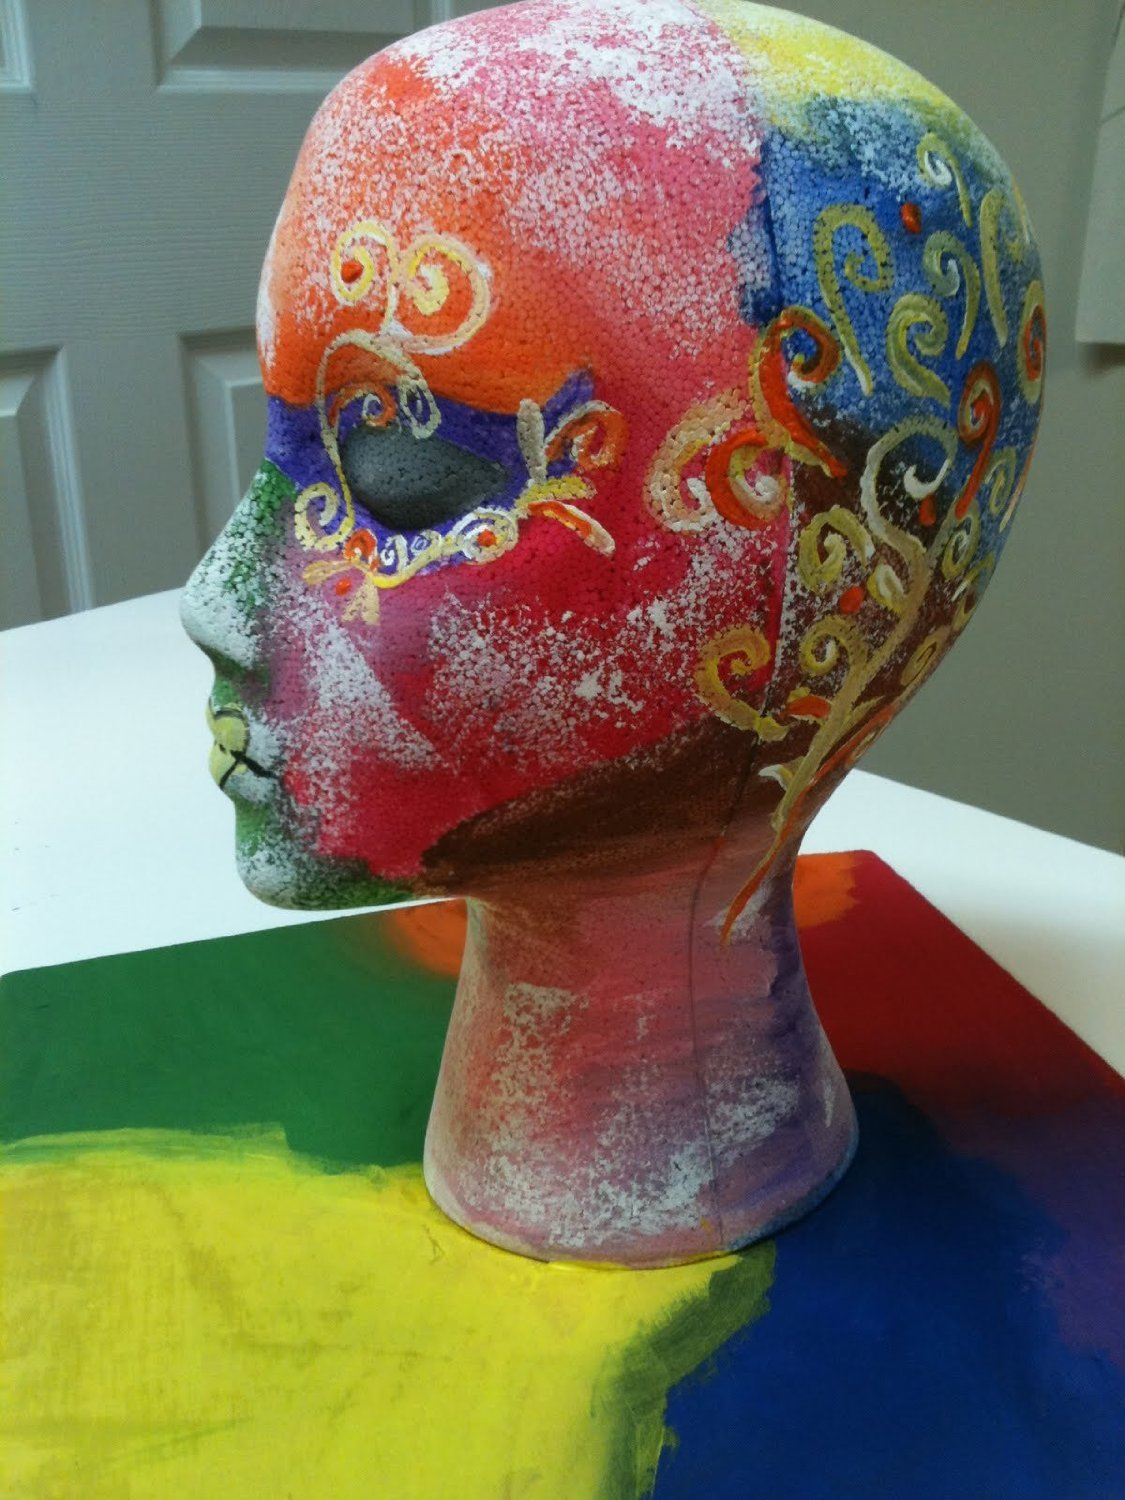 Styrofoam Mannequin Head with Female Face (1) by NaRaMax (Image #1)